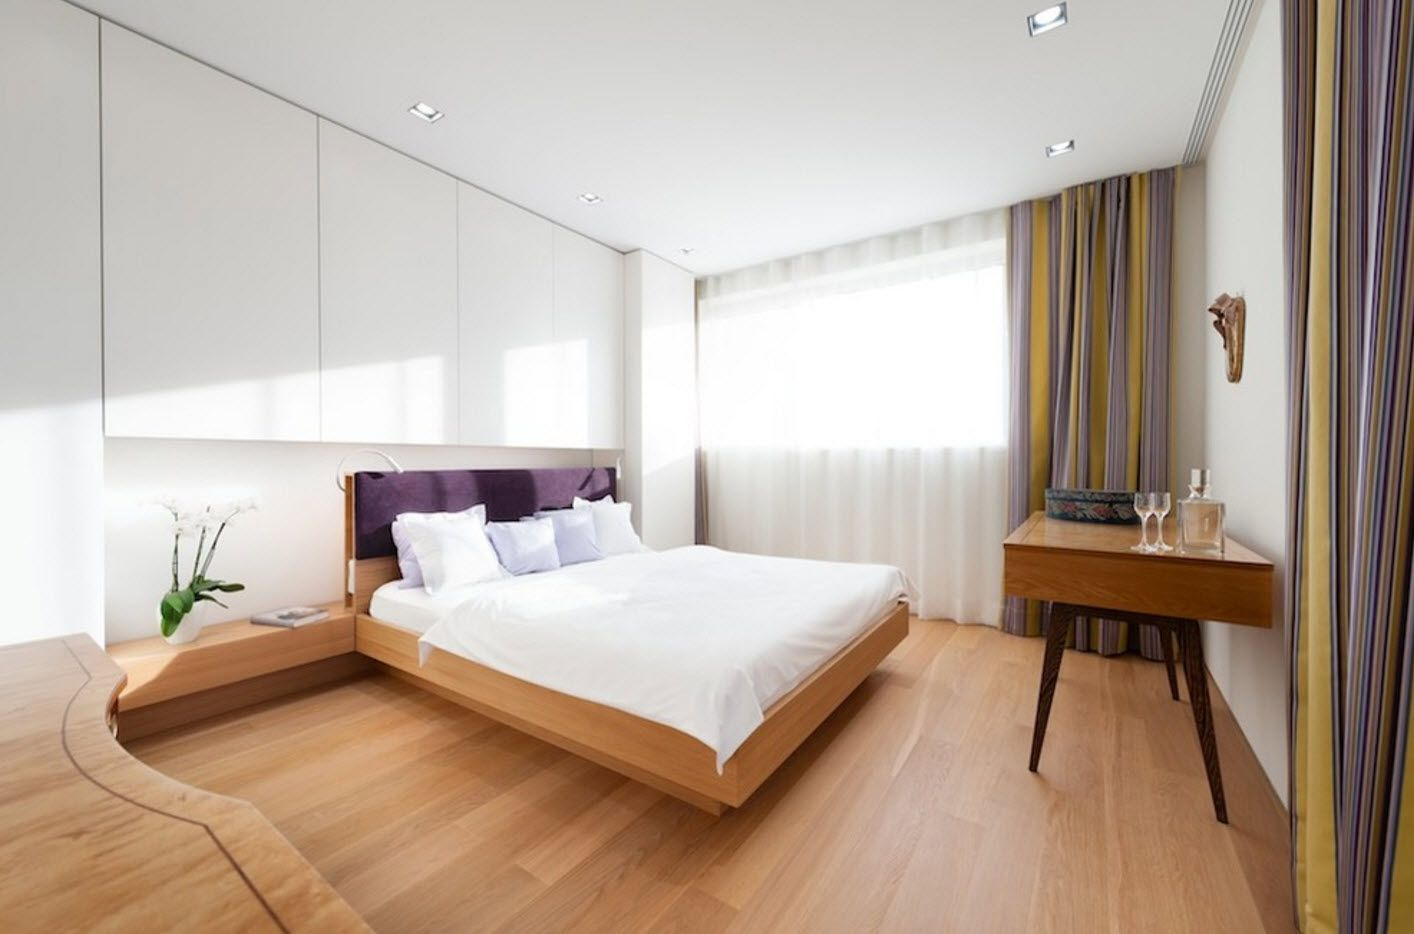 Spectacular design of the modern boxed bedroom with wooden flooring, platform bed and glossy plastic glossy headboard